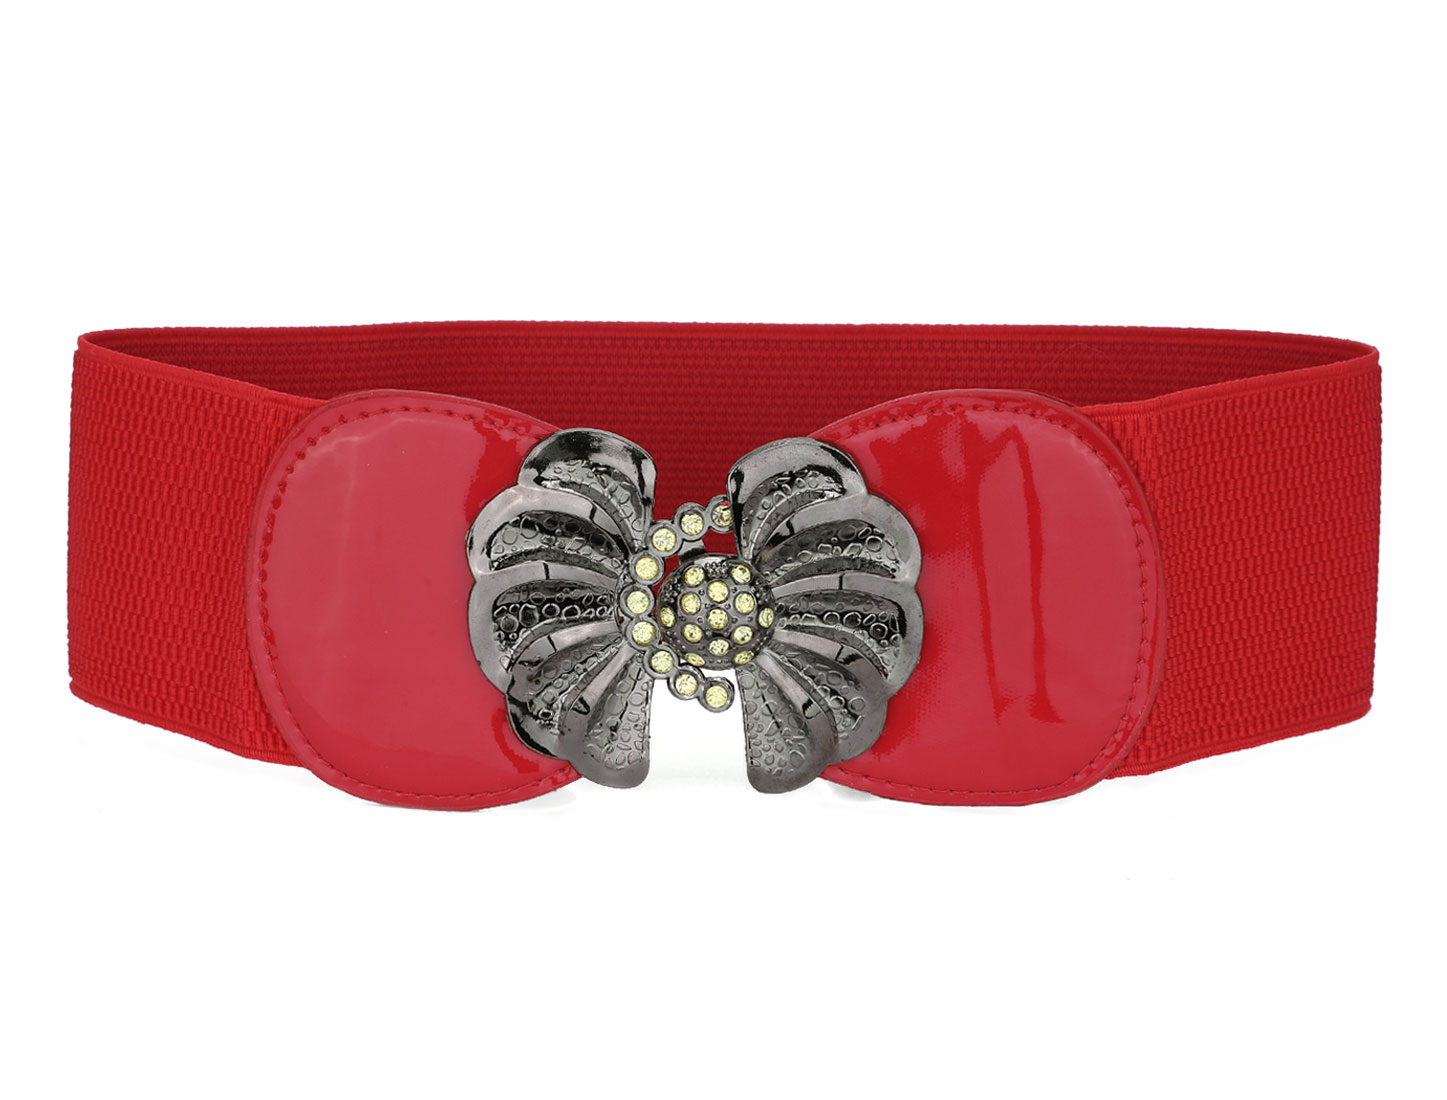 Red Metal Interlocking Buckle Rhinestone Detail Stretchy Belt for Ladies